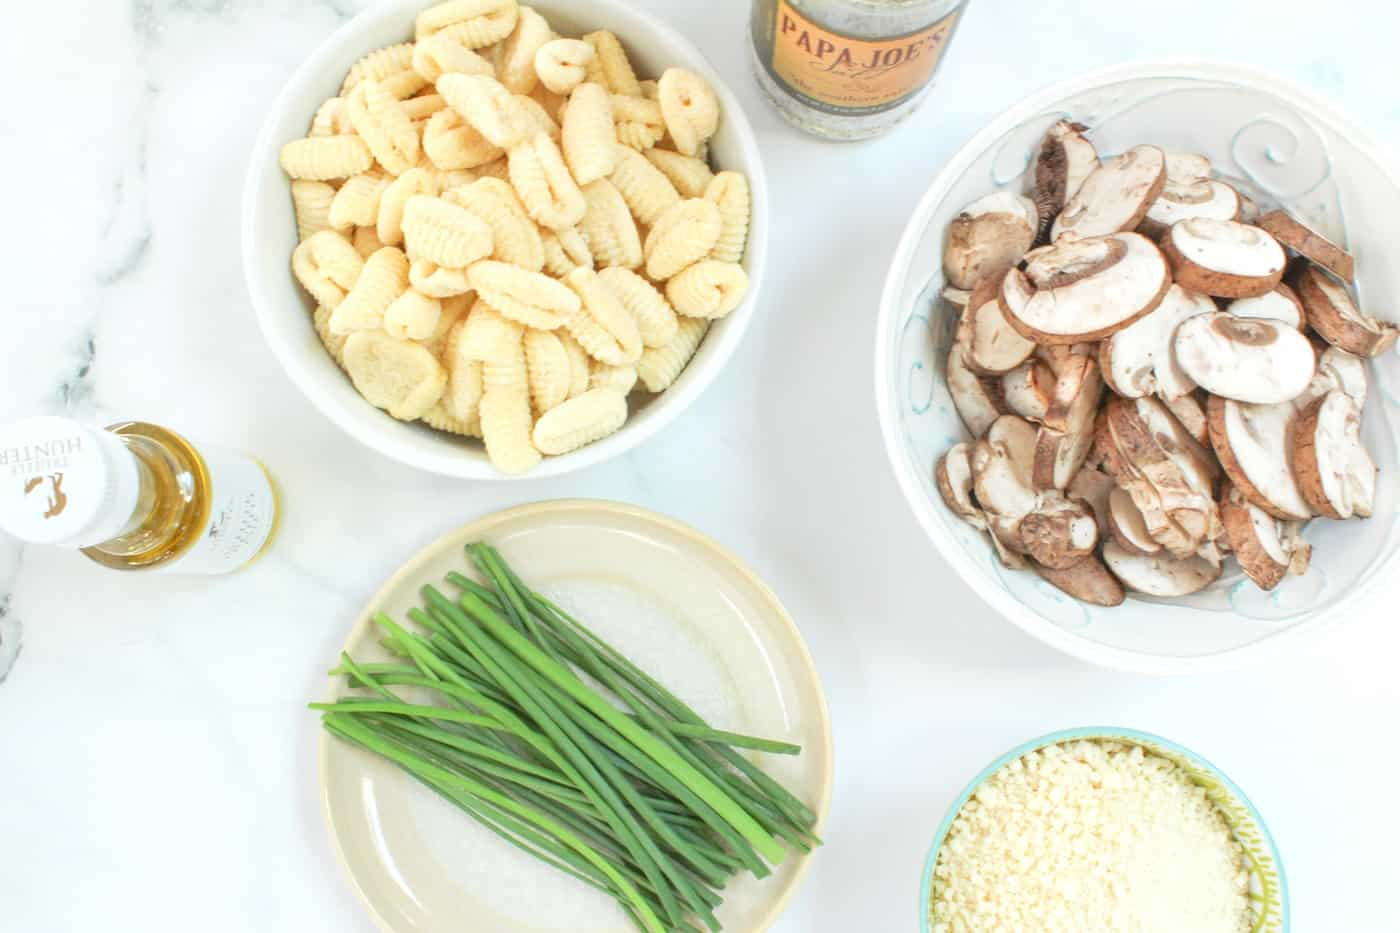 ingredients for Gnocchi with Mushroom Ragu and Peas